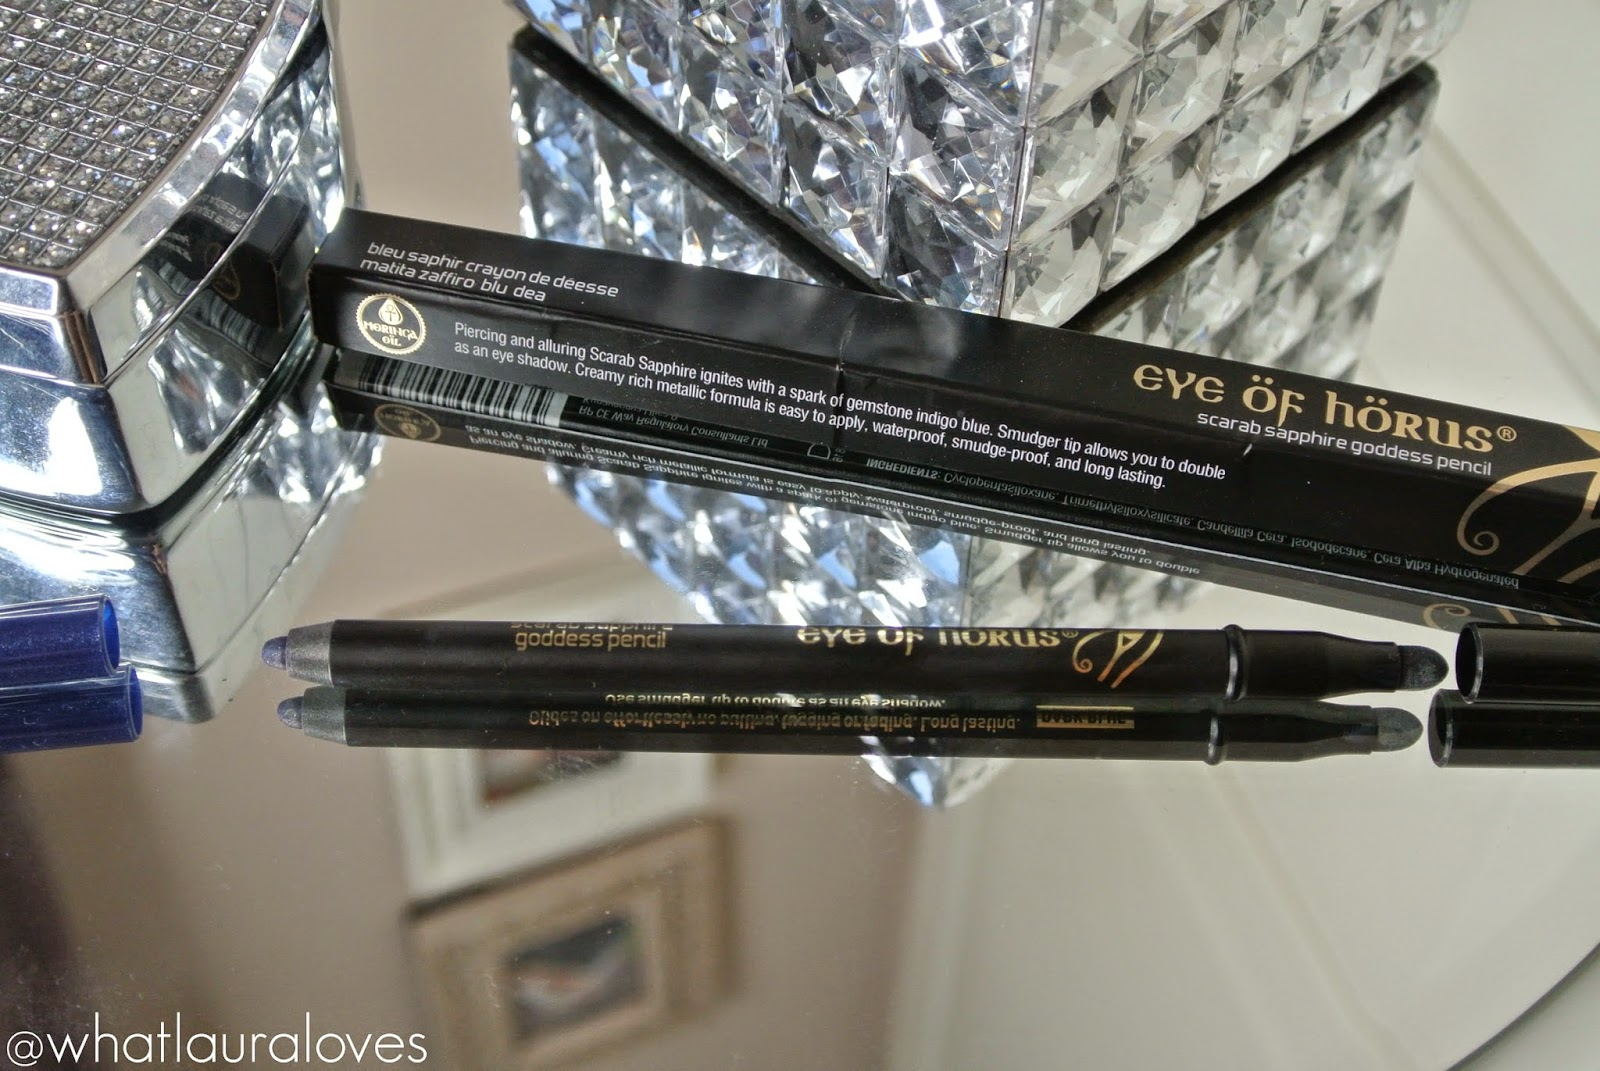 Eye of Horus Scarab Sapphire Goddess Pencil Review Indigo Eye Pencil